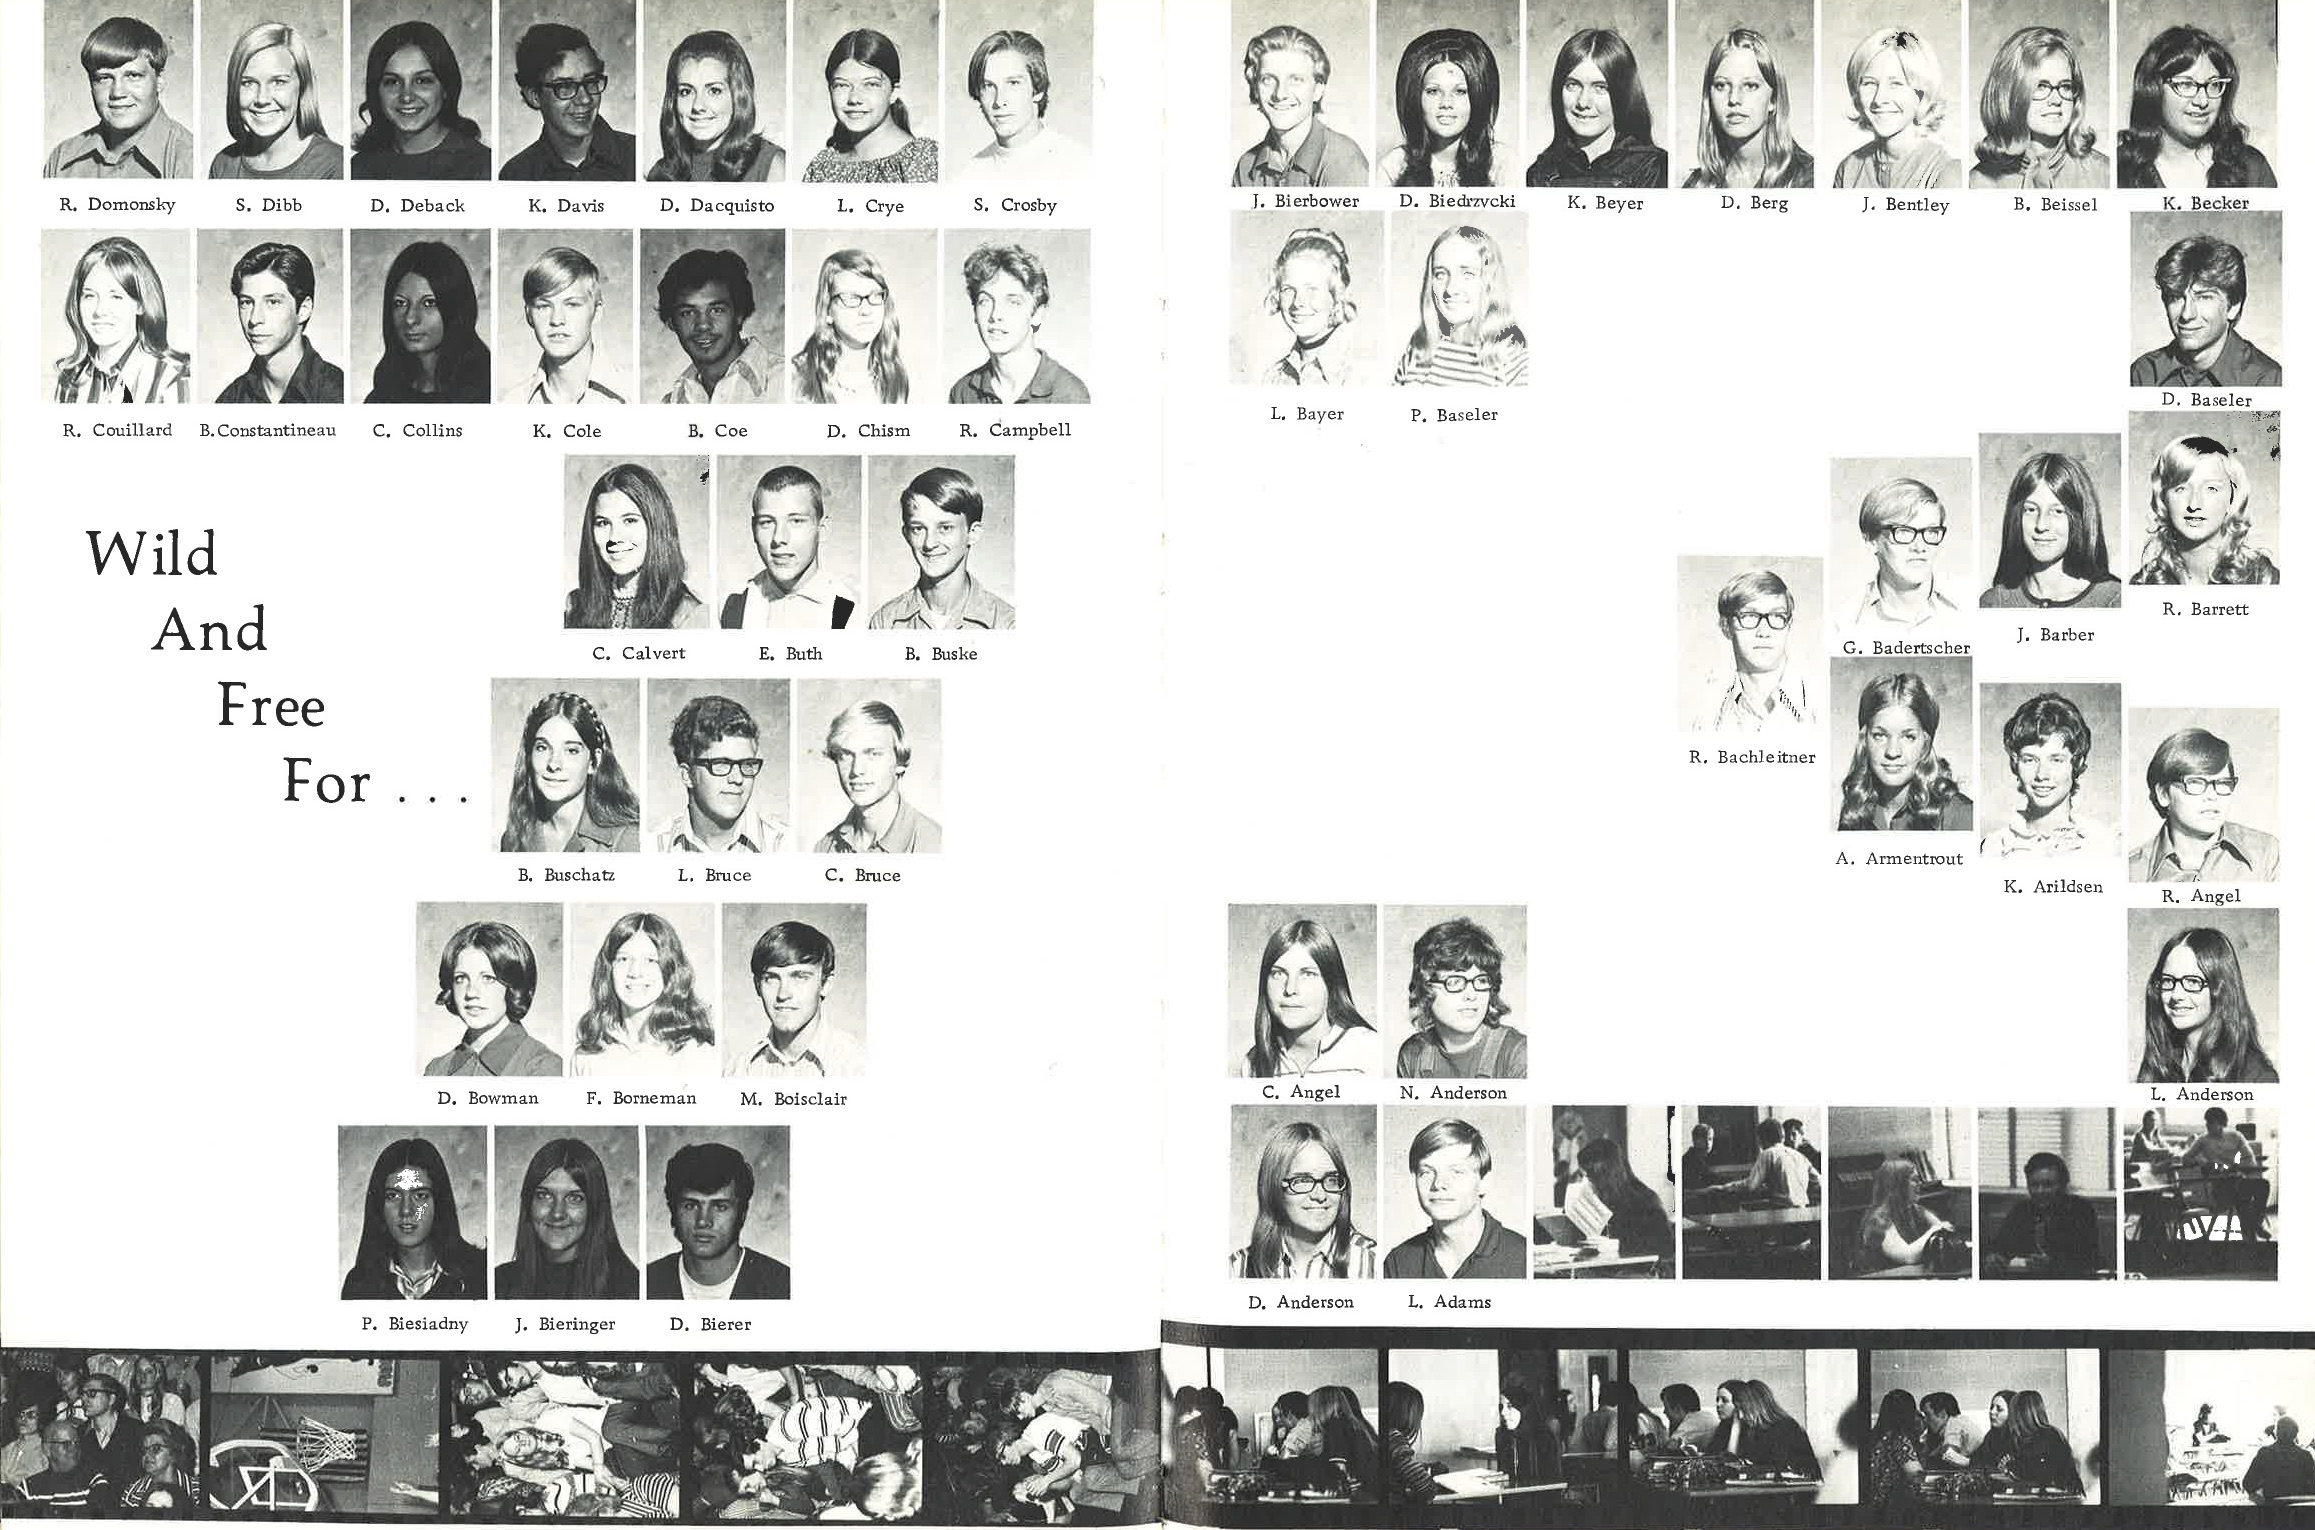 1972_Yearbook_92-93.jpg